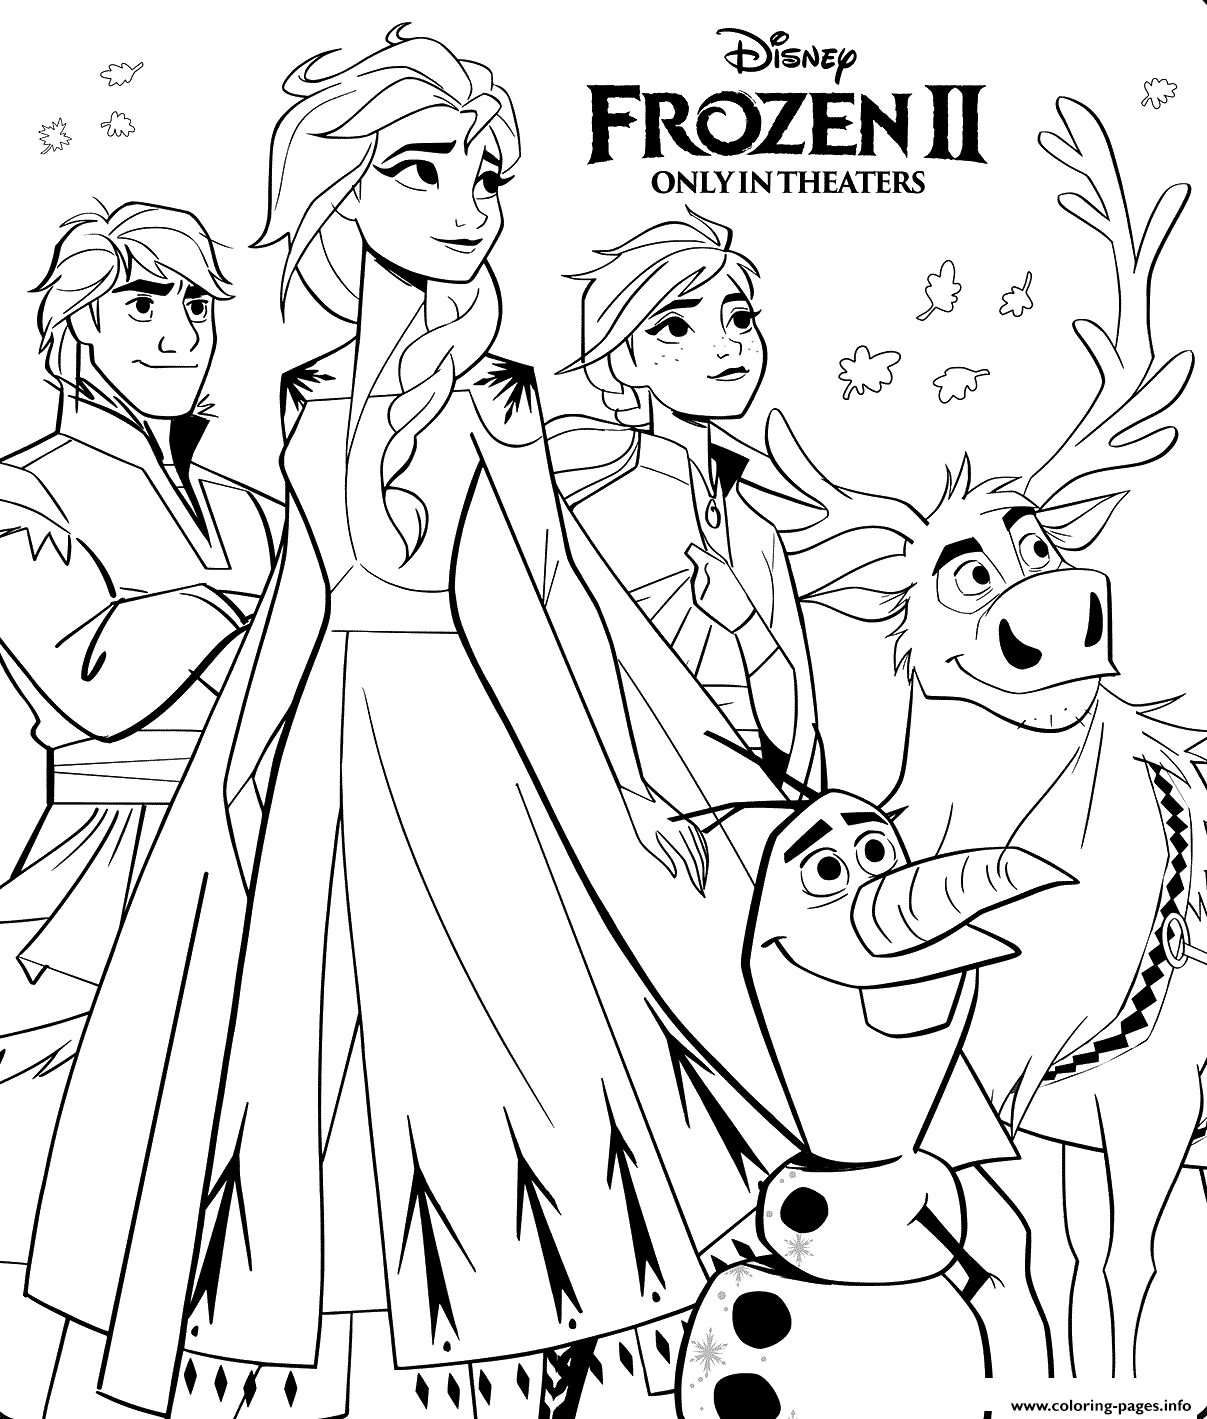 free printable frozen coloring pages printable coloring pages frozen 2 printable template free frozen free coloring pages printable